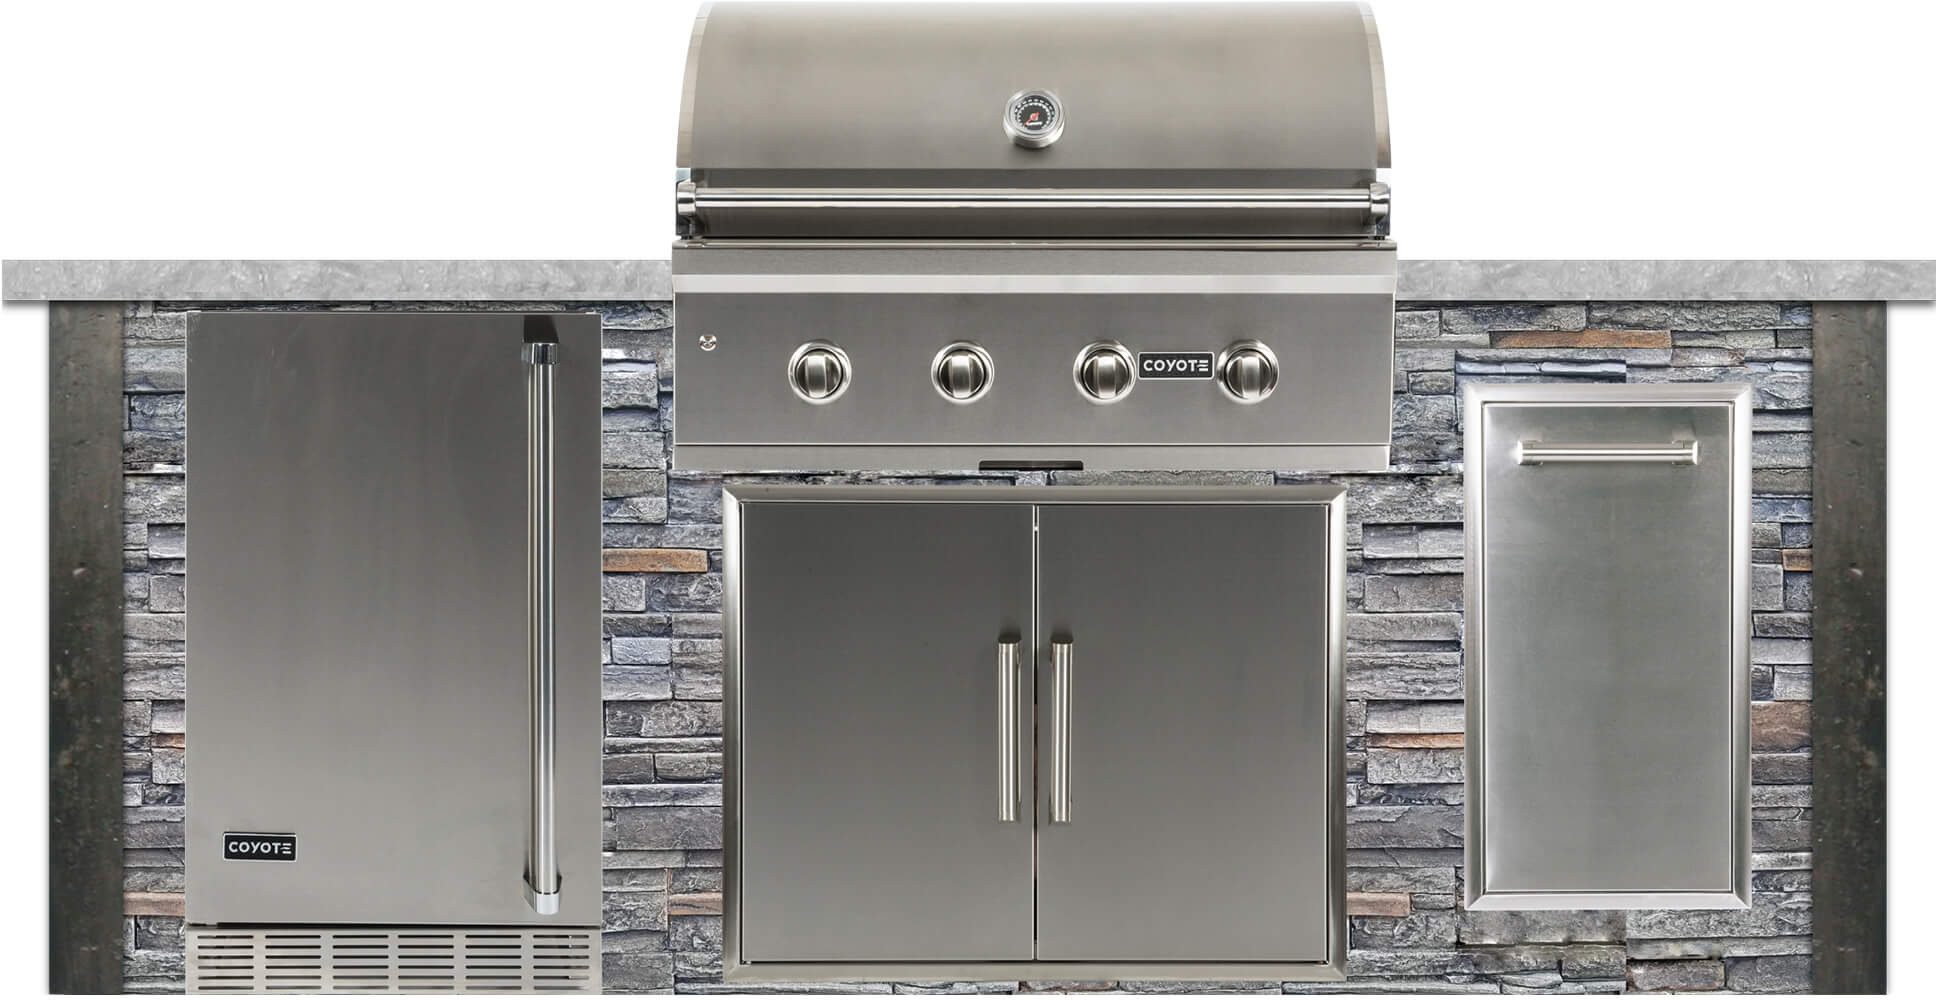 Rta Rtag8upackage17 8 Outdoor Kitchen Island With 36 Built In Natural Gas Grill 21 Refrigerator 31 Double Access Doors And 14 Pull Out Trash And Recycle